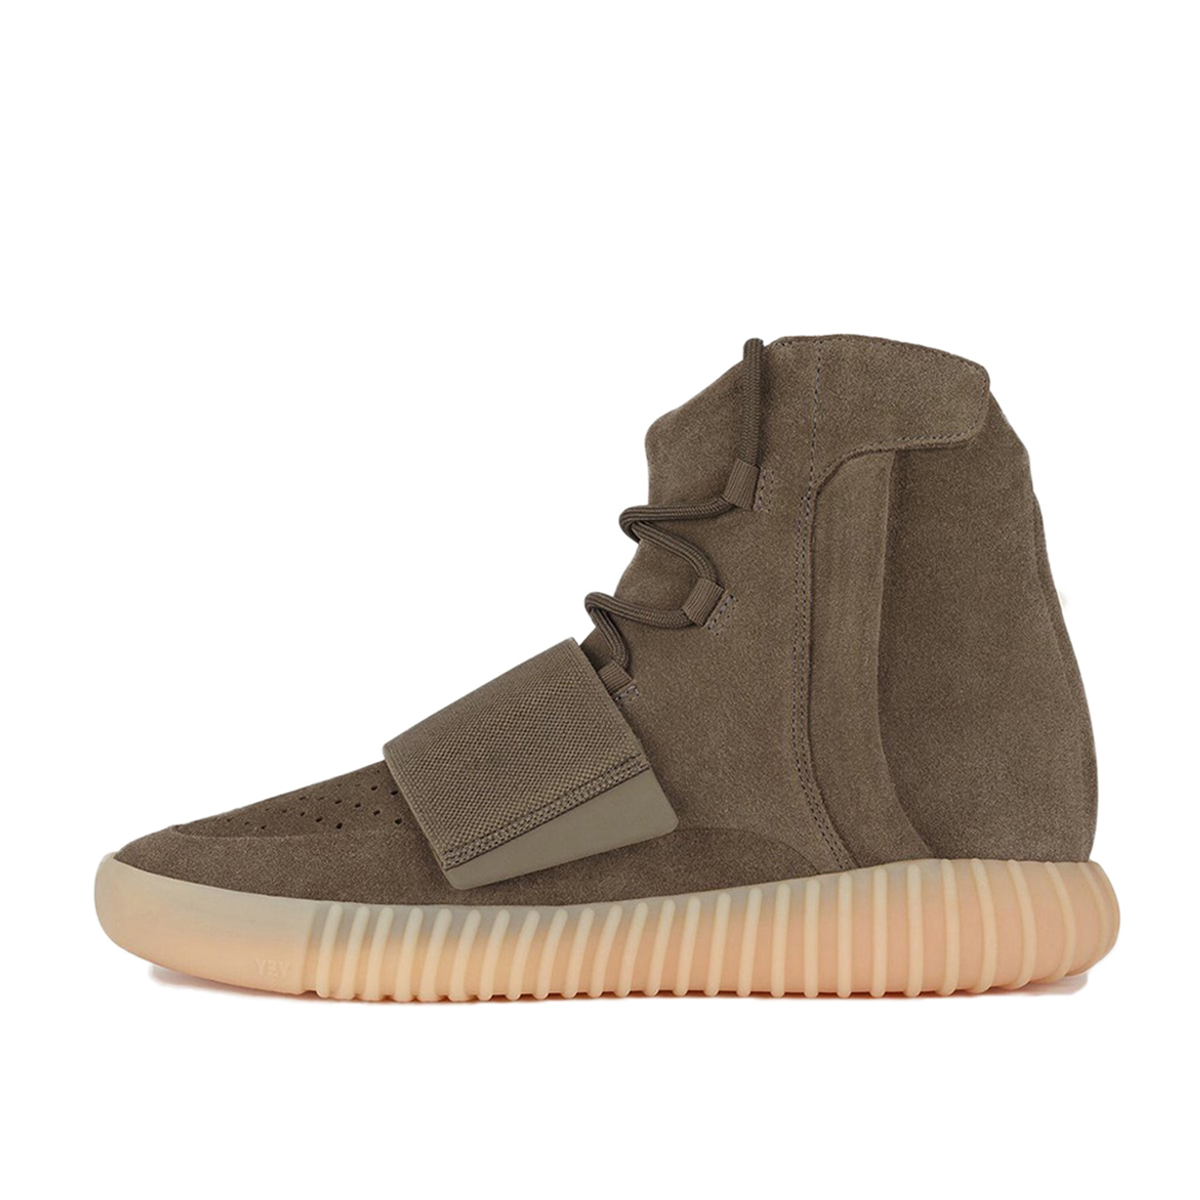 Adidas Yeezy Boost 750 Chocolate brown gum Kanye West